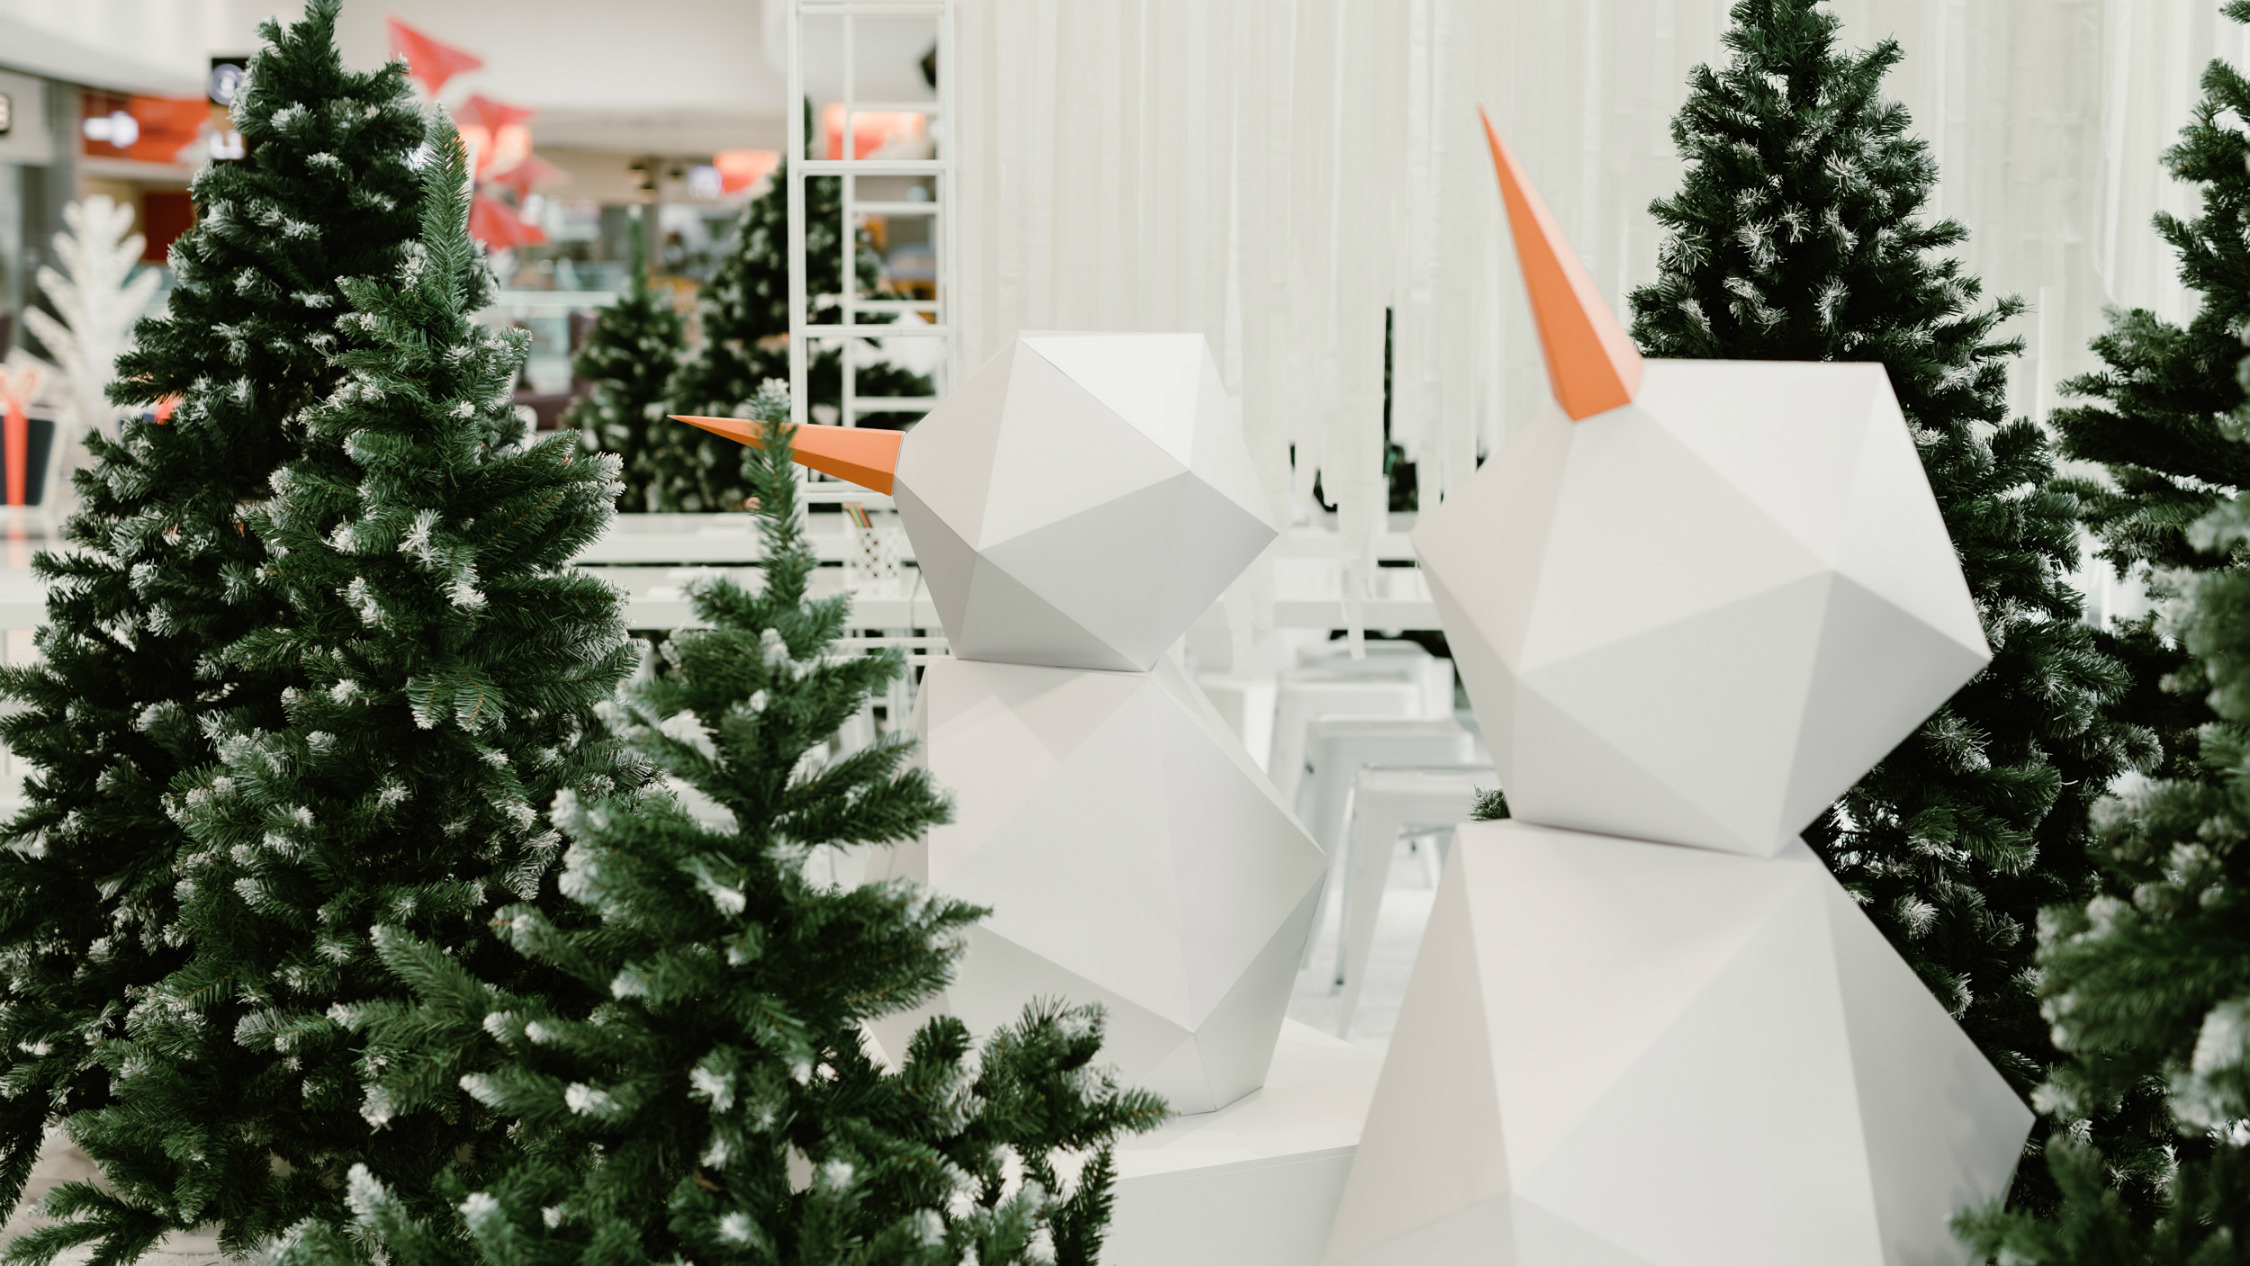 Snowy Christmas trees with geometric snowmen